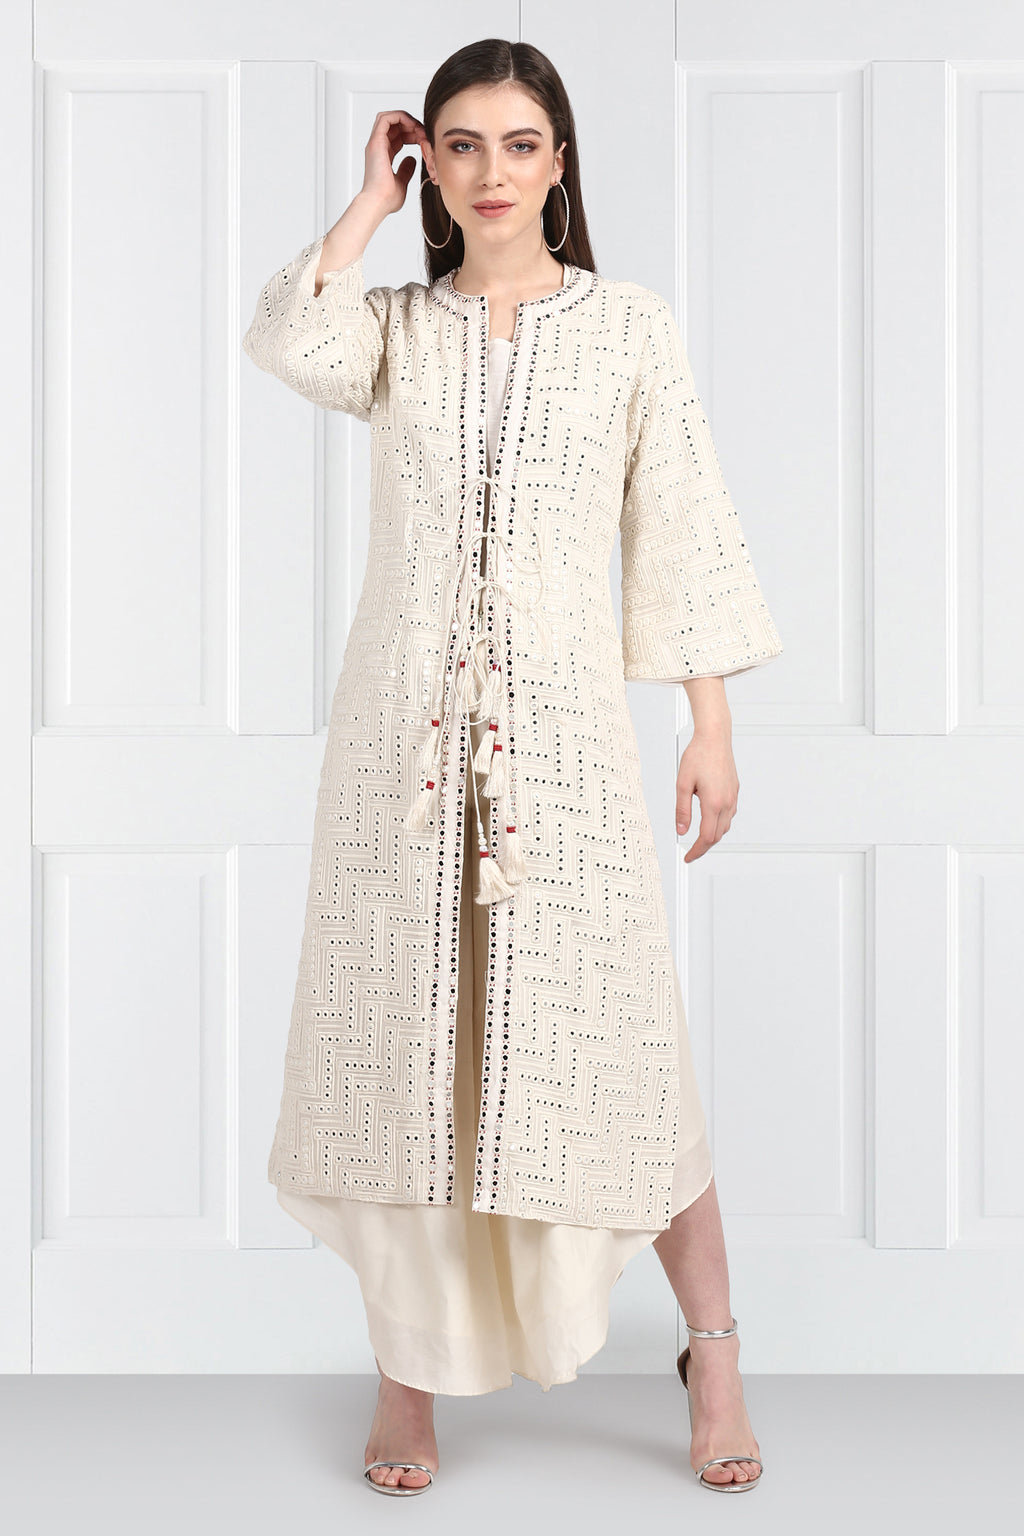 White Long Mirrorwork Overlay Bell Sleeves jacket with Tassles